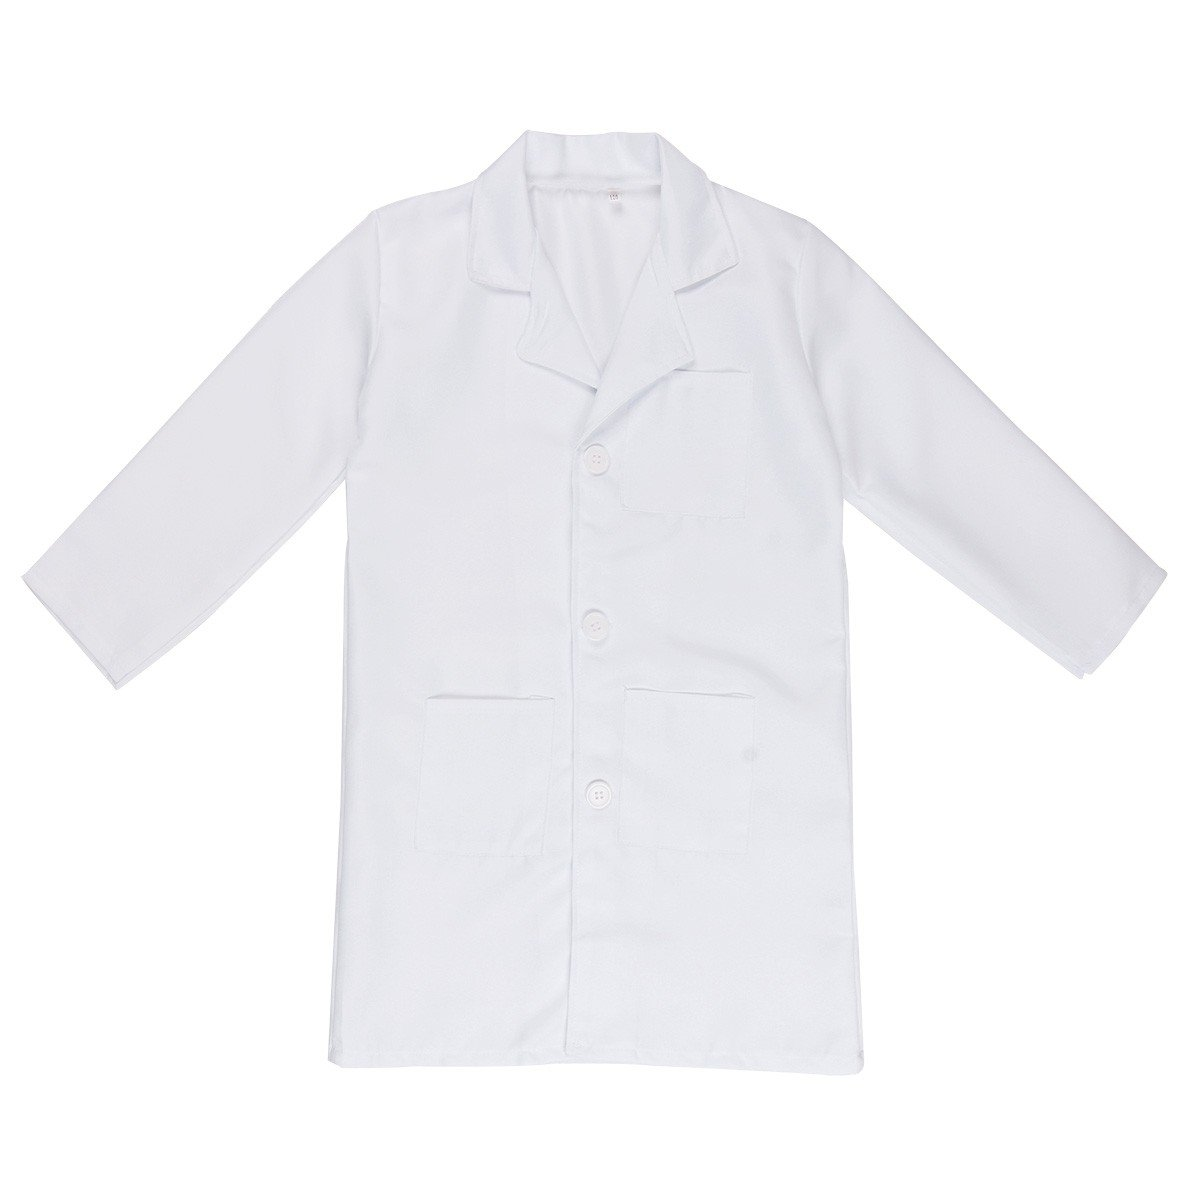 FEESHOW Kids Boy Girl Long Sleeve White Lab Coat Doctor Uniform Outfit Cosplay Costume White 7-8 by EESHOW (Image #1)